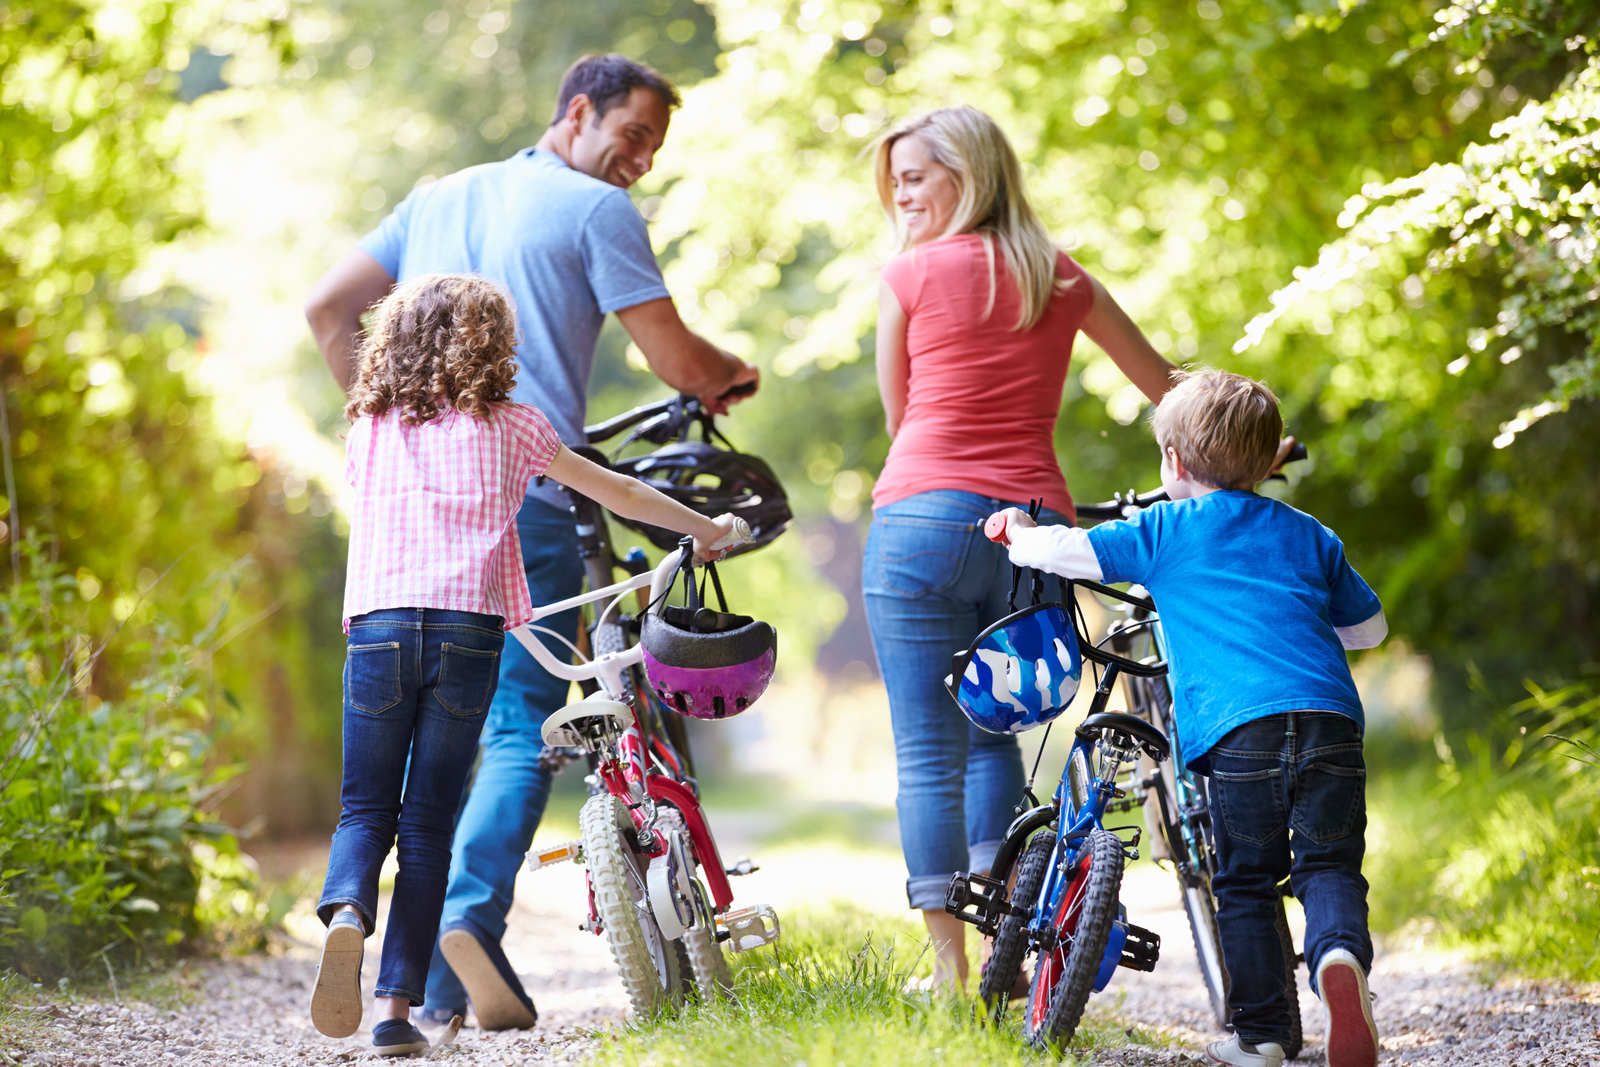 From Stonebridge, an afternoon excursion is a short ride away. Enjoy the many parks and trails of Fairfax County in this scenic Centreville location.